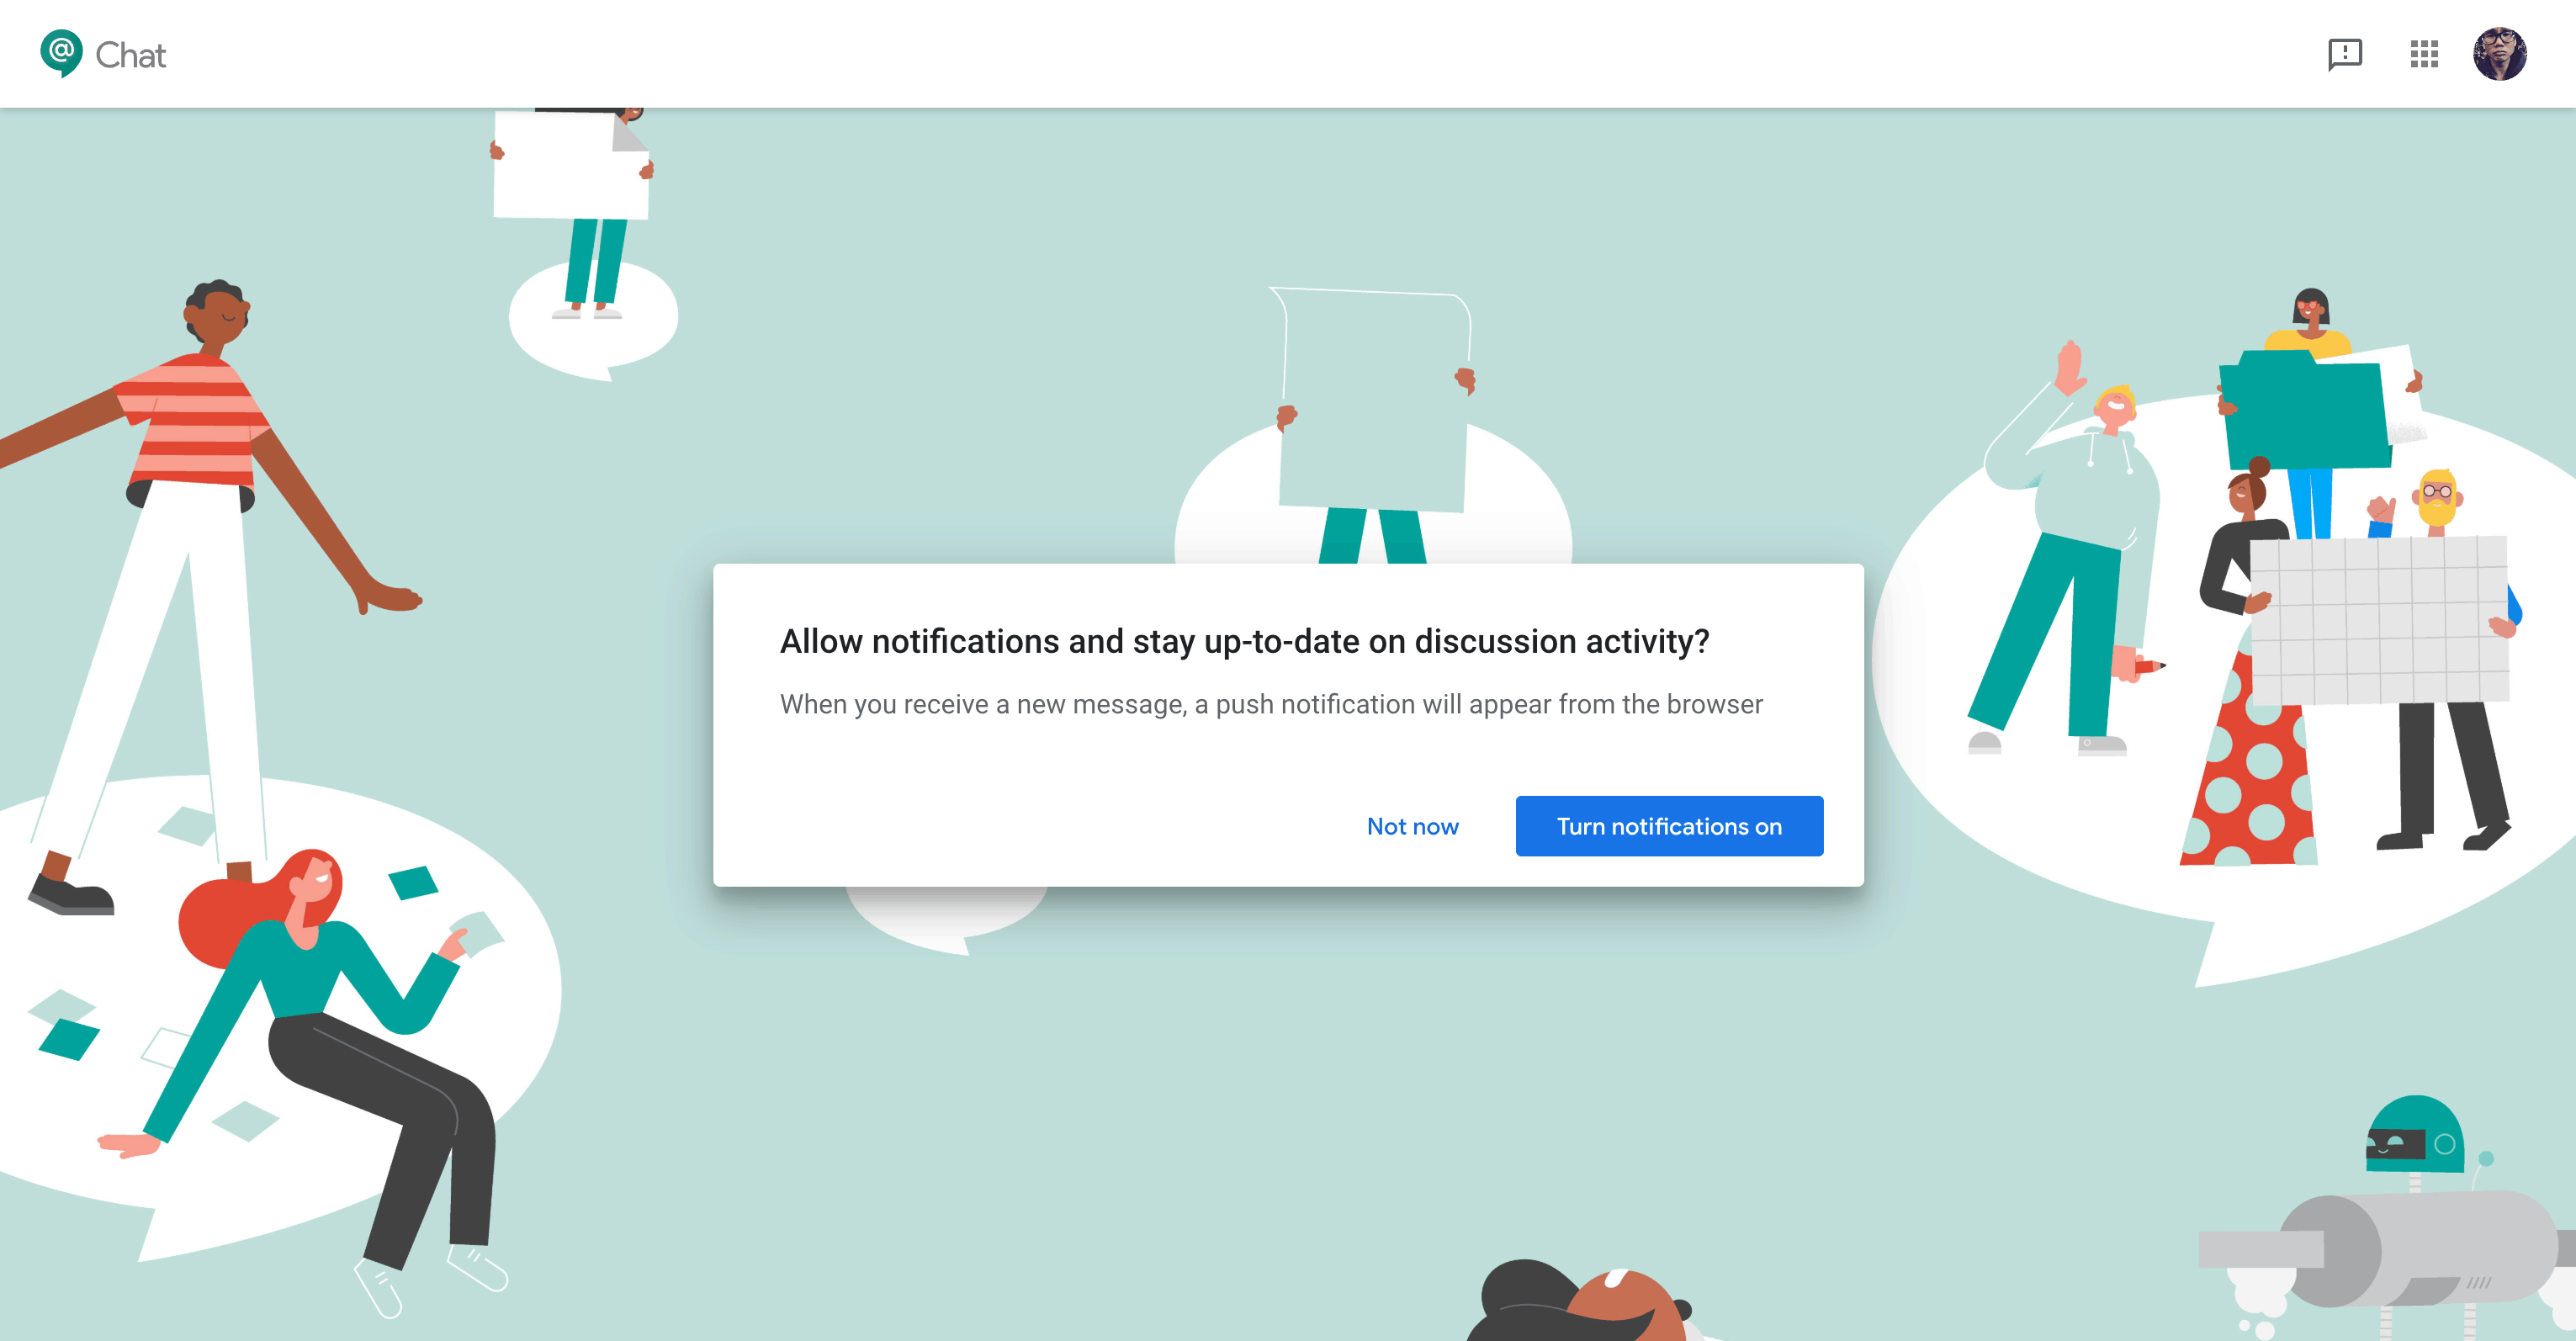 Ask Permission by Google Chat